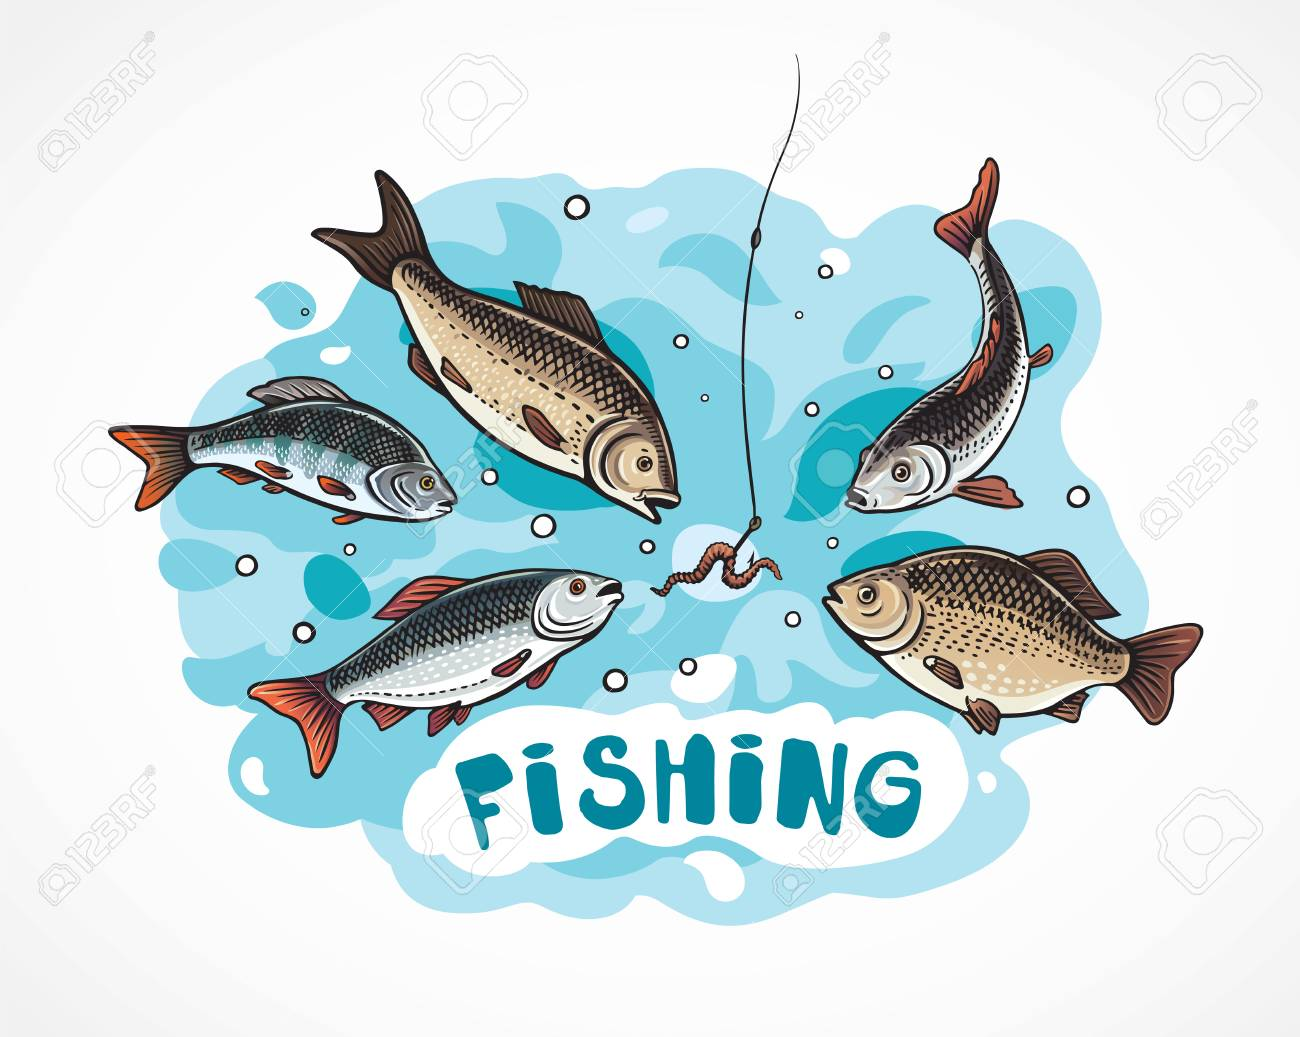 Illustration about fishing in cartoon style, hungry fish attack to the a hook (bait). - 106430153